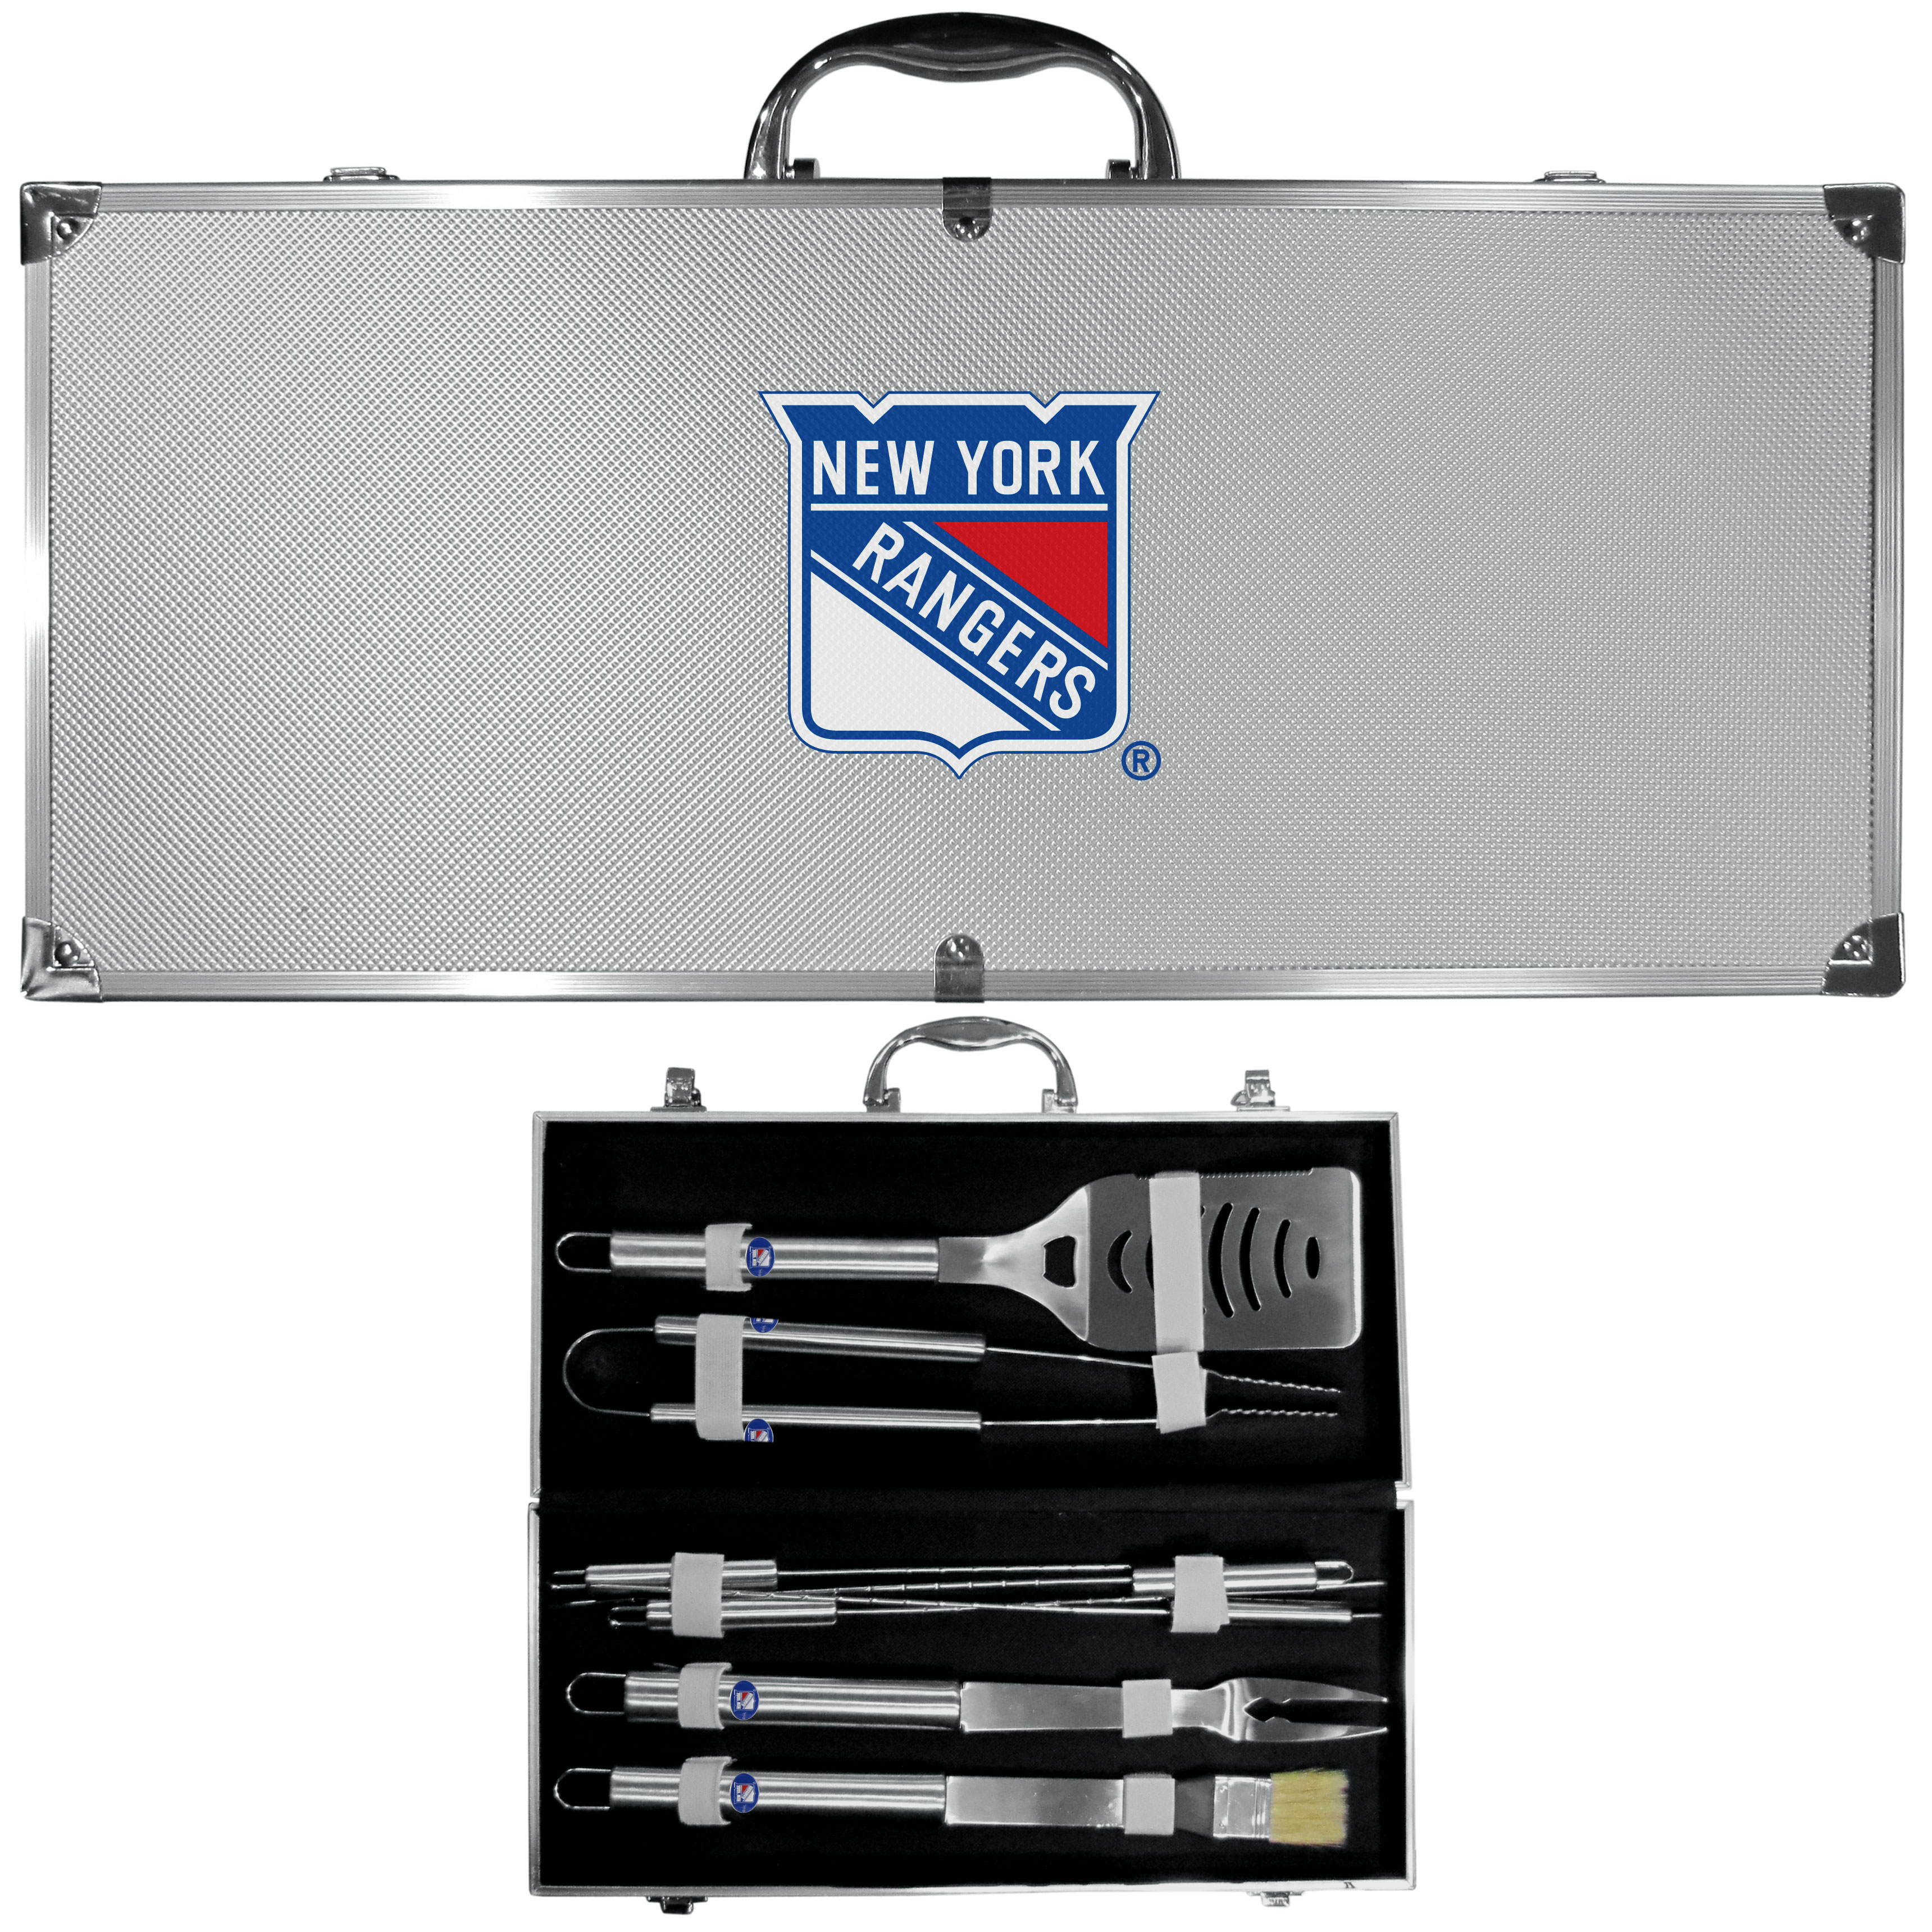 New York Rangers® 8 pc Stainless Steel BBQ Set w/Metal Case - This is the ultimate New York Rangers® tailgate accessory! The high quality, 420 grade stainless steel tools are durable and well-made enough to make even the pickiest grill master smile. This complete grill accessory kit includes; 4 skewers, spatula with bottle opener and serrated knife edge, basting brush, tongs and a fork. The 18 inch metal carrying case makes this a great outdoor kit making grilling an ease while camping, tailgating or while having a game day party on your patio. The tools are 17 inches long and feature a metal team emblem. The metal case features a large, metal team emblem with exceptional detail. This high-end men's gift is sure to be a hit as a present on Father's Day or Christmas.